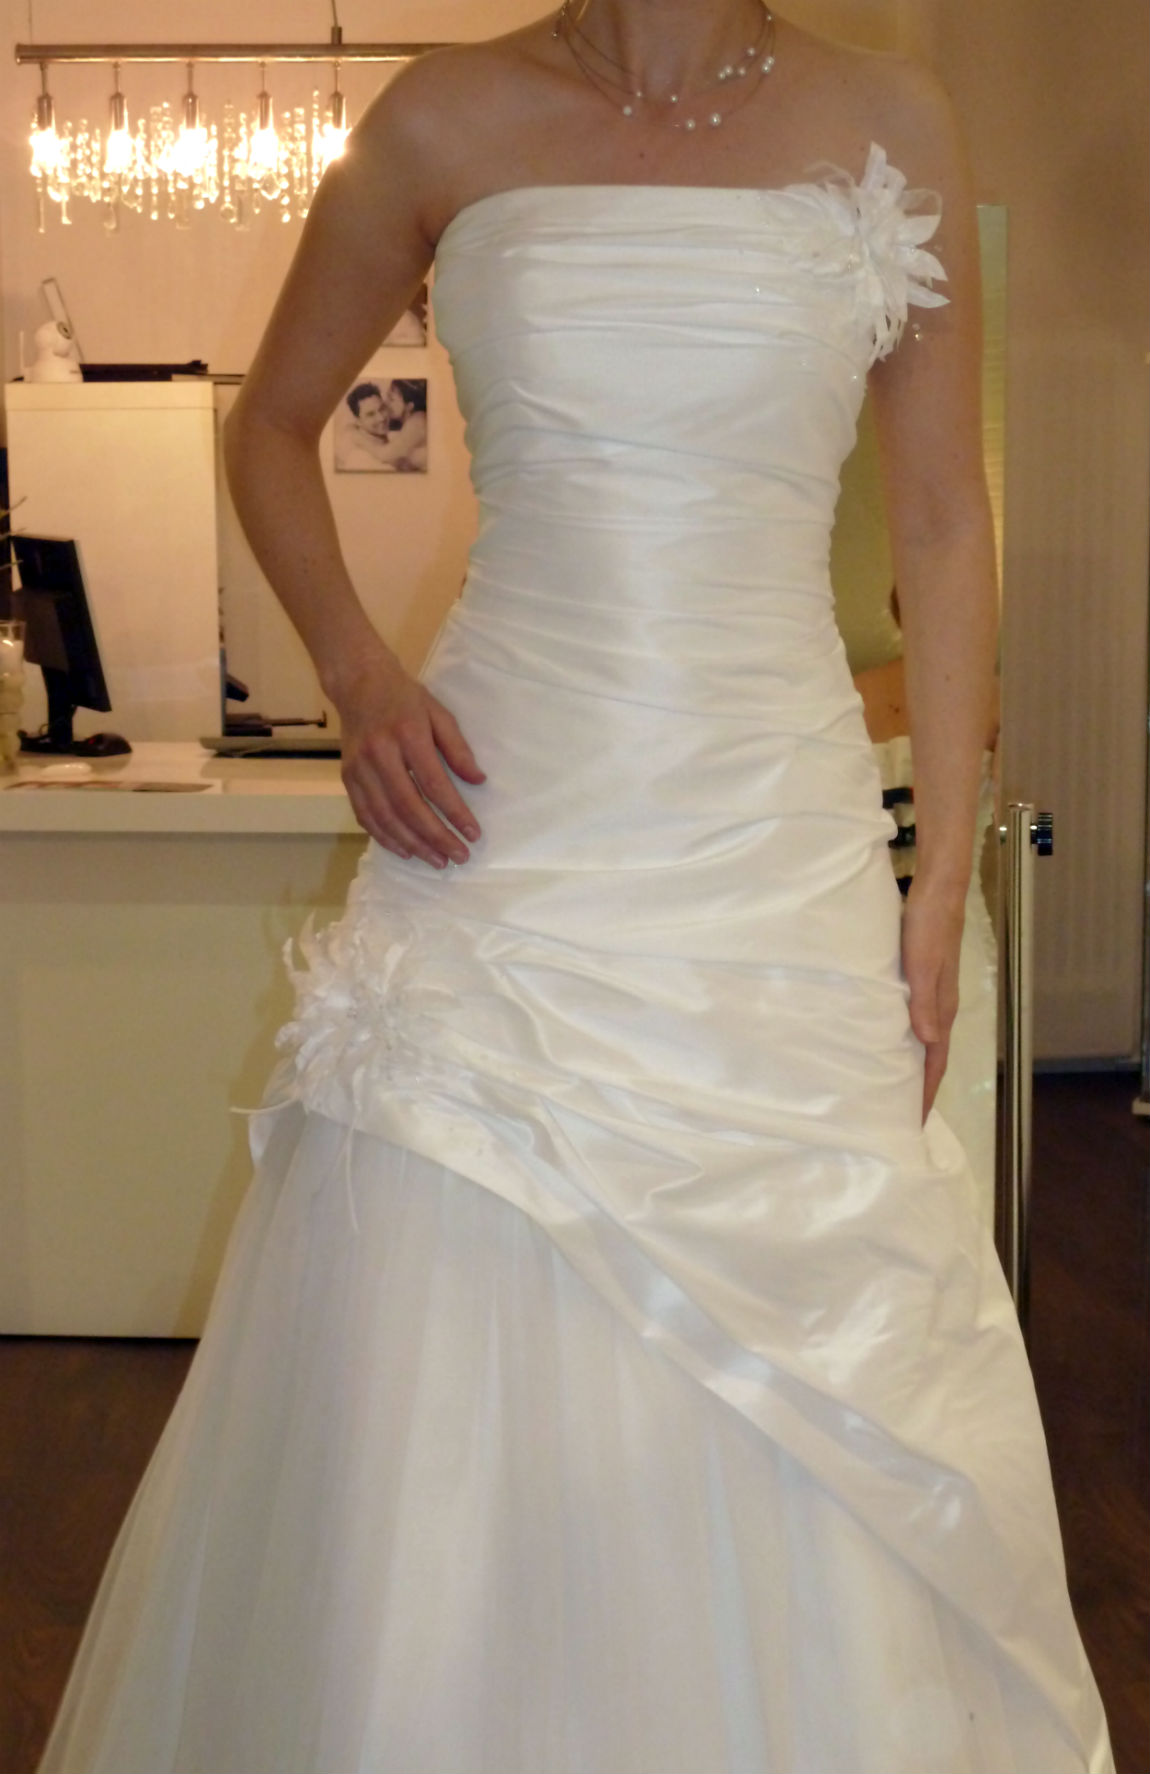 Lovely wedding dress #1